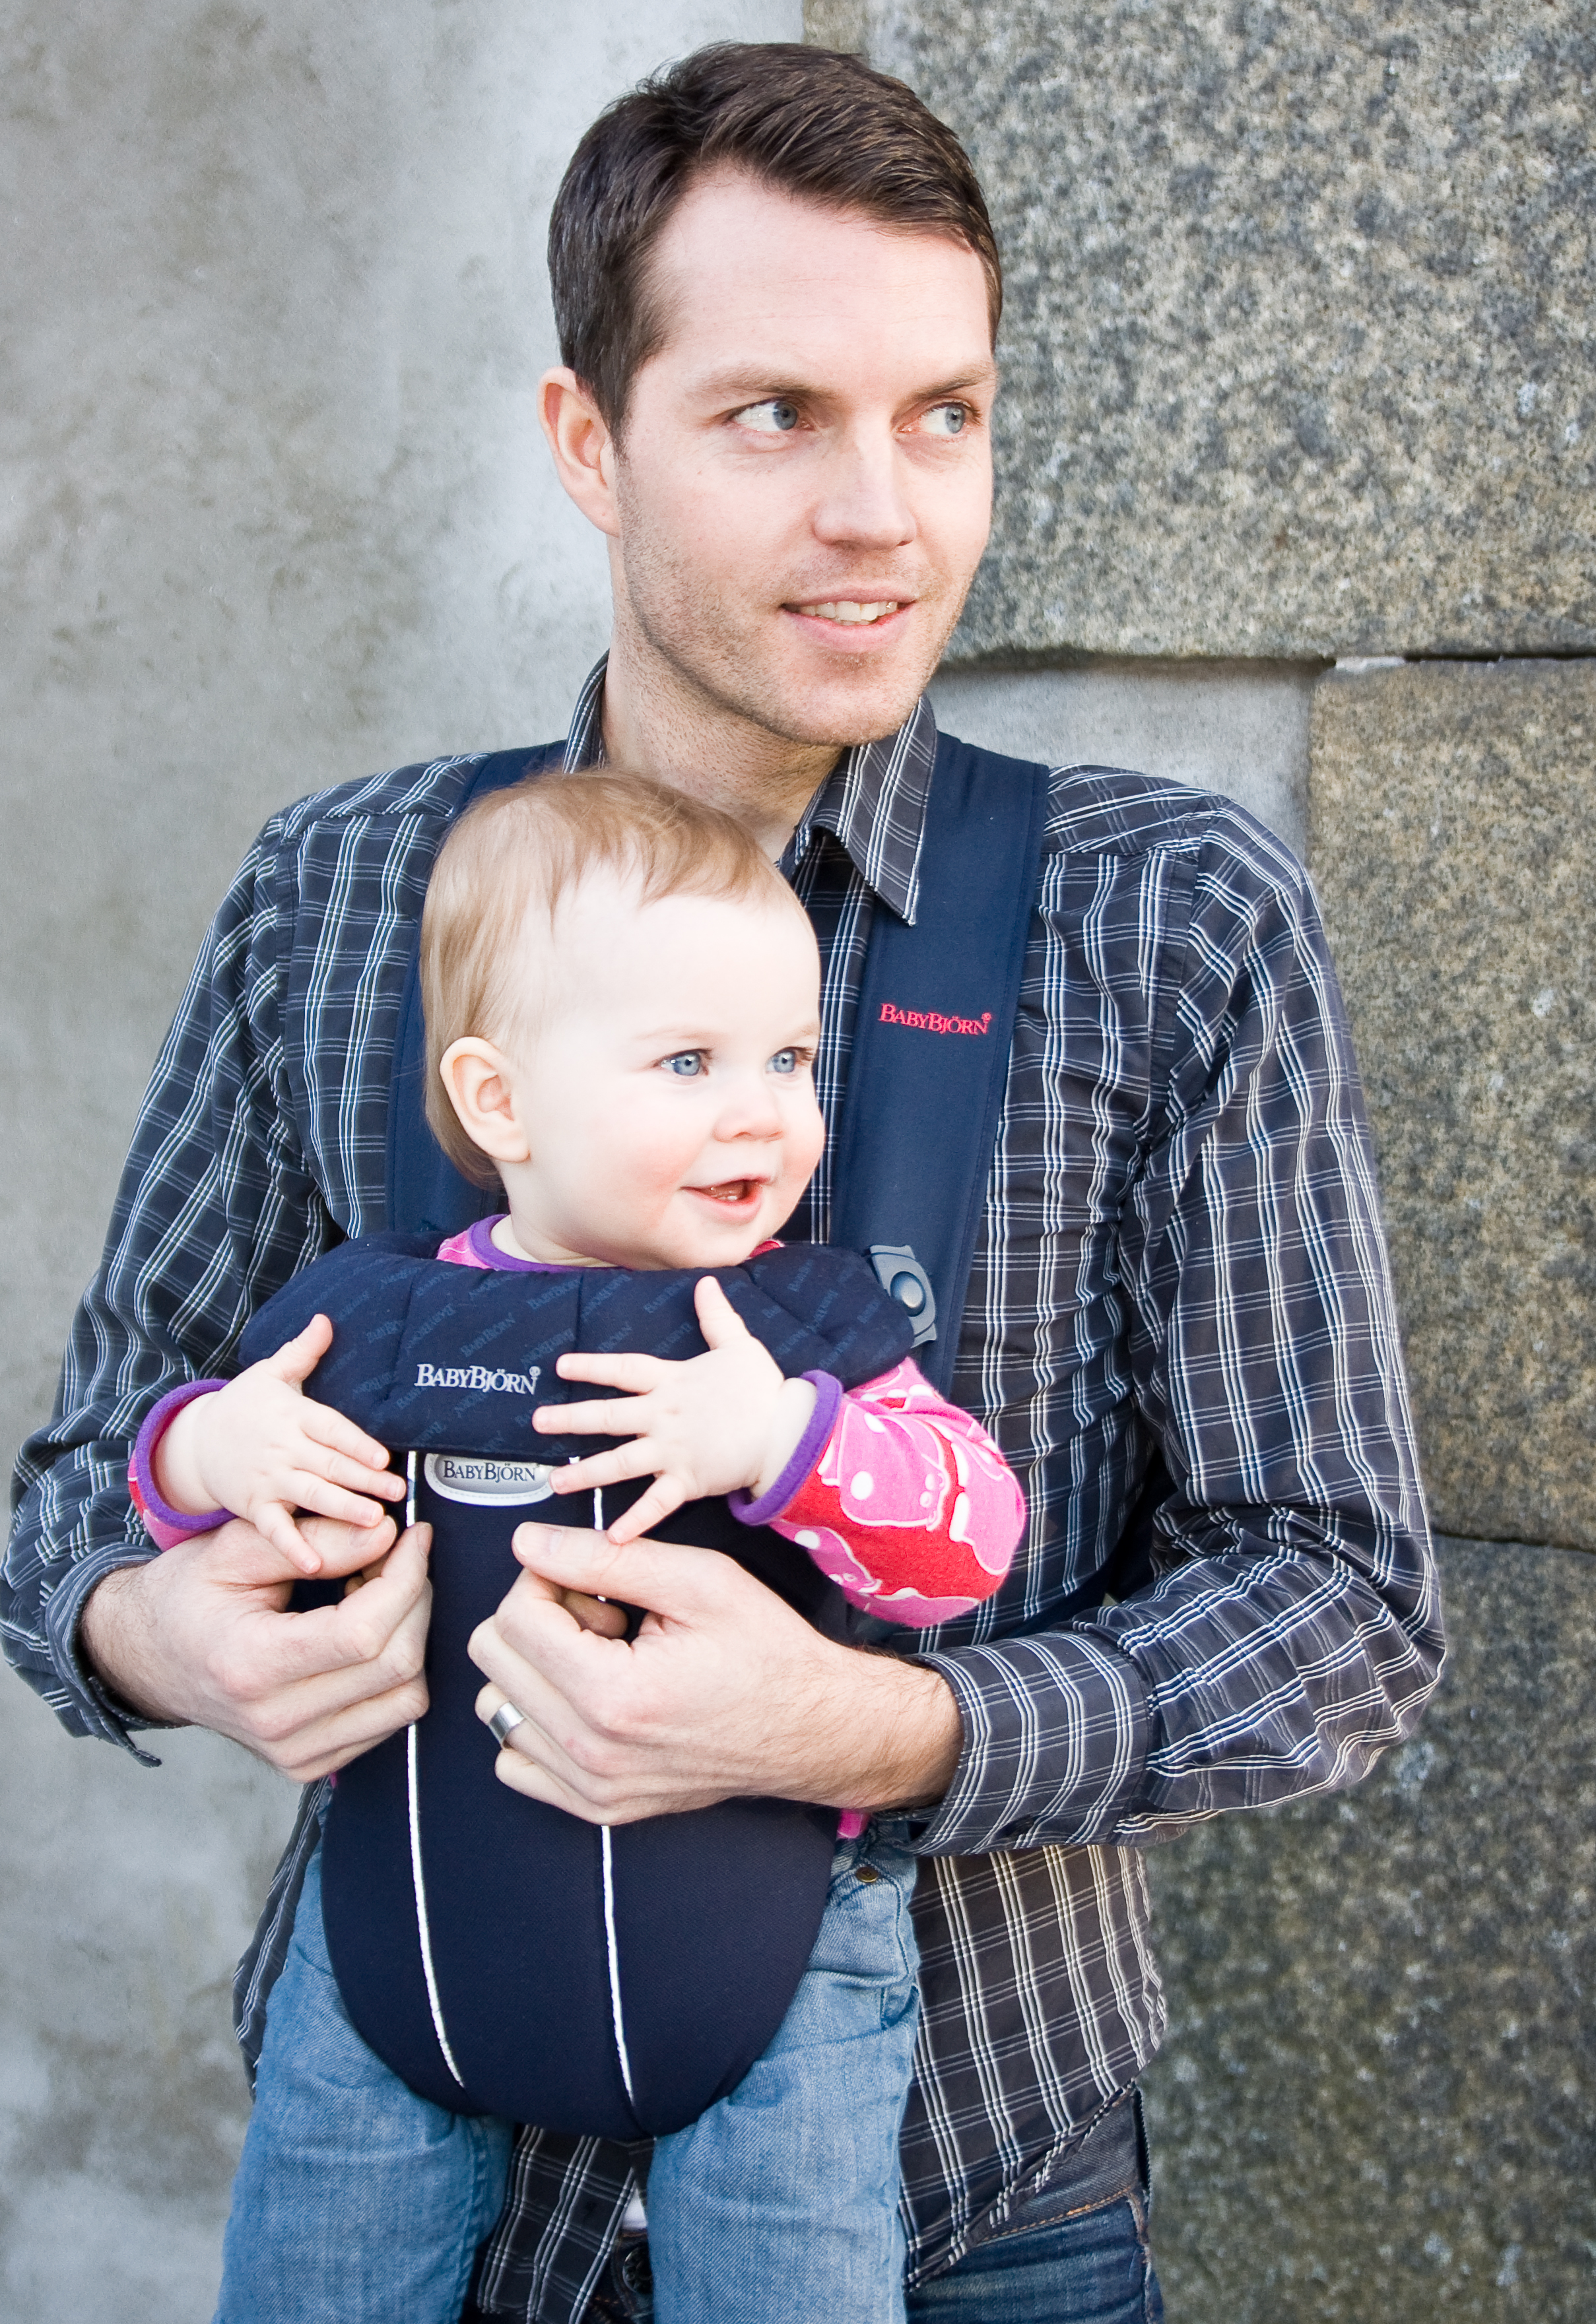 Is It Uncomfortable Carrying Baby Around In Carrier